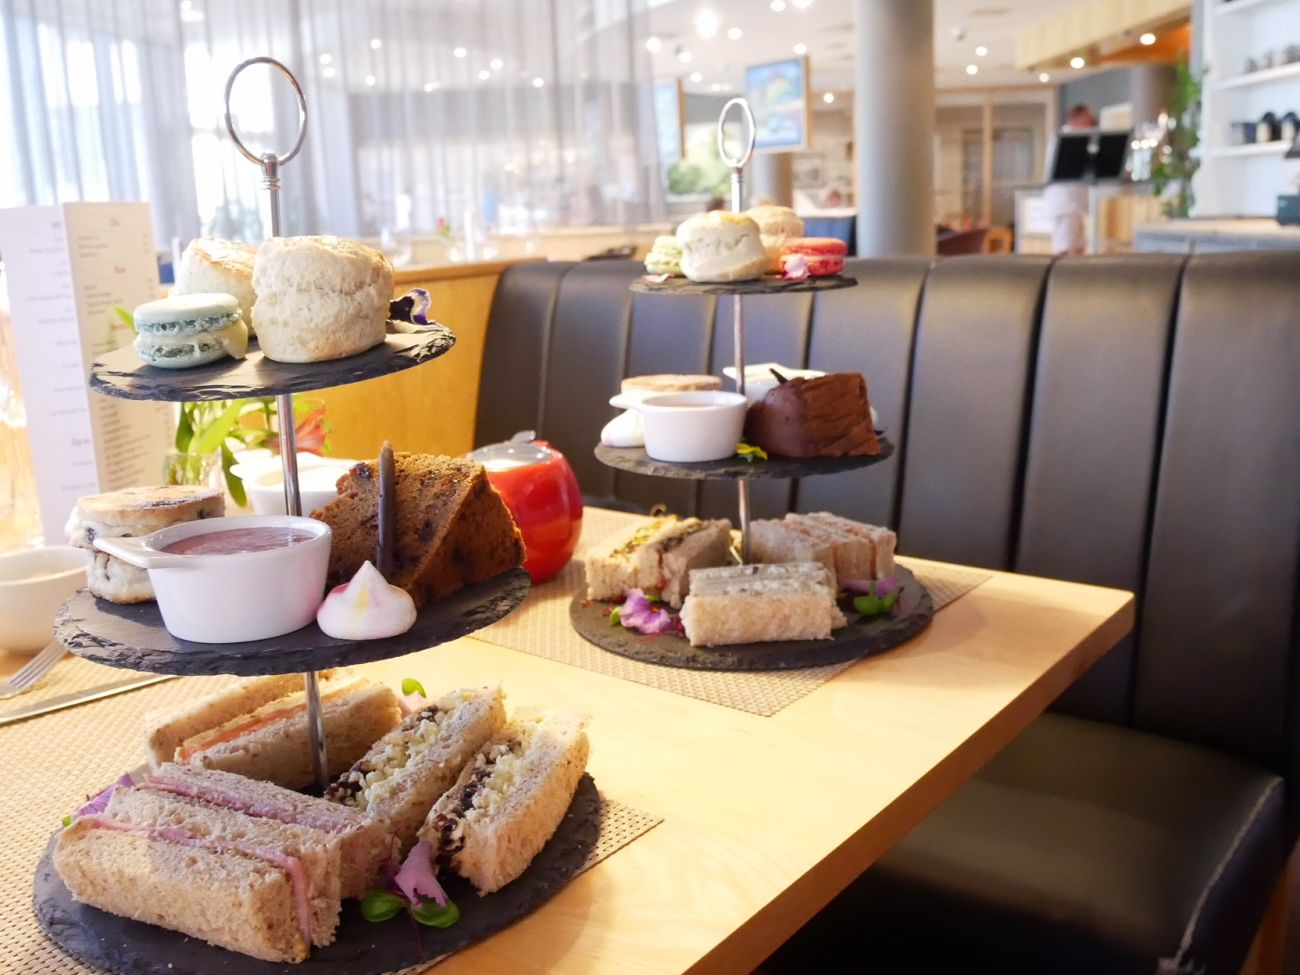 Afternoon tea in Cardiff Bay Future Inn's Thomas Restaurant